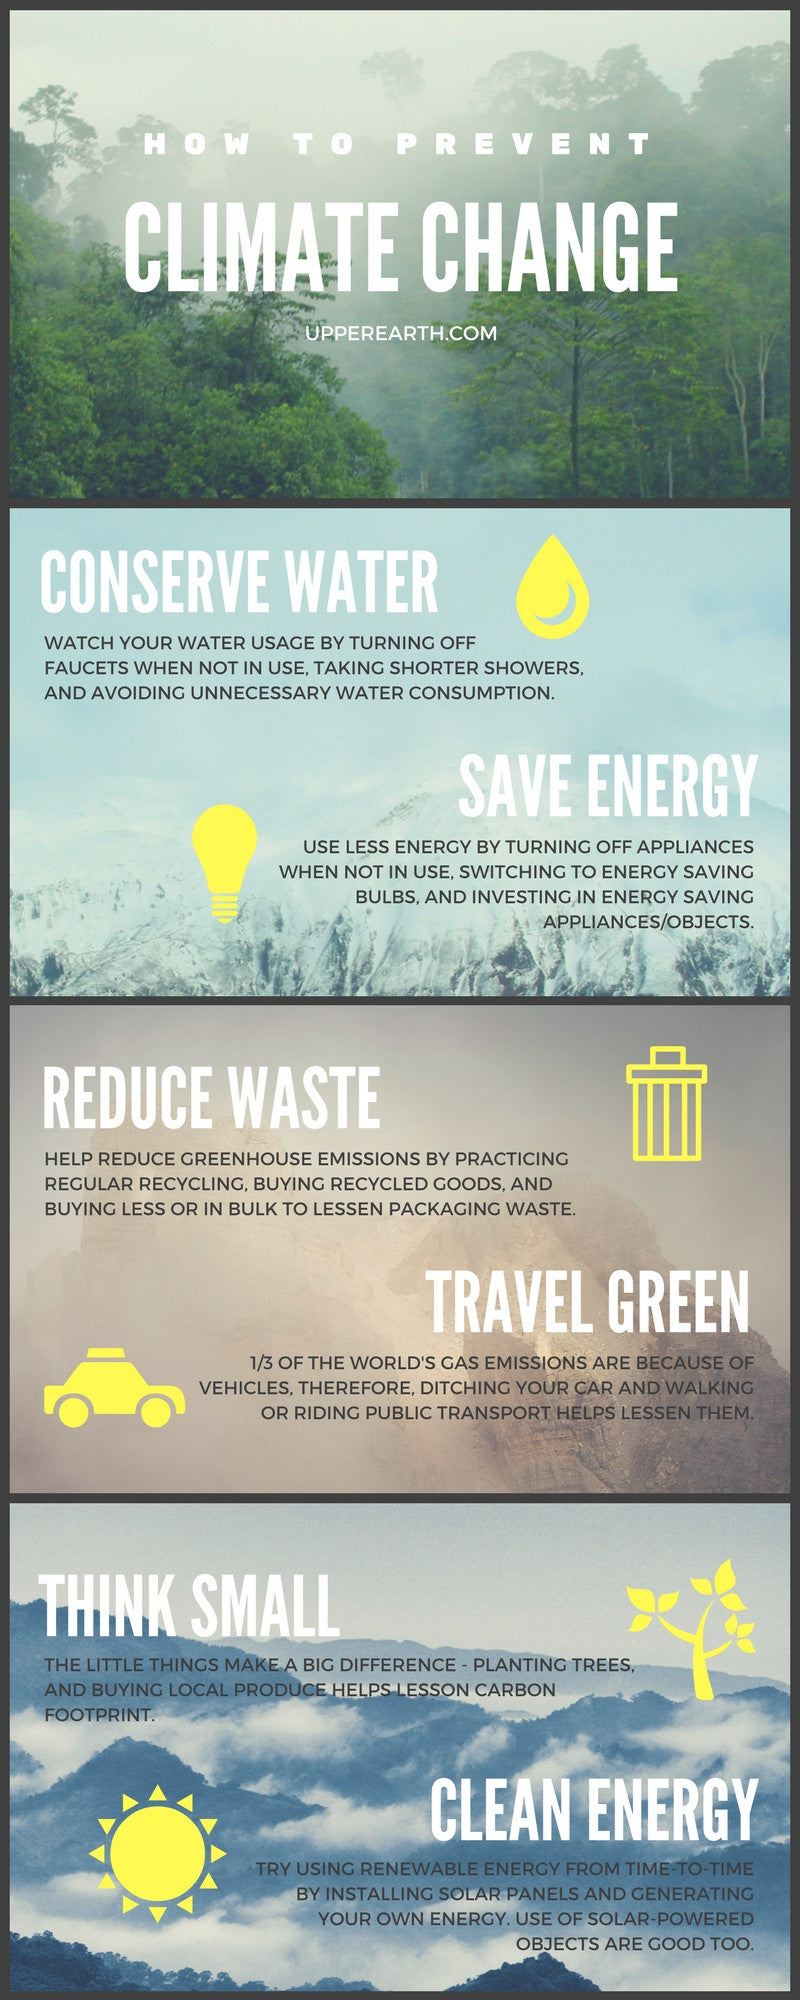 6 ways to prevent climate change